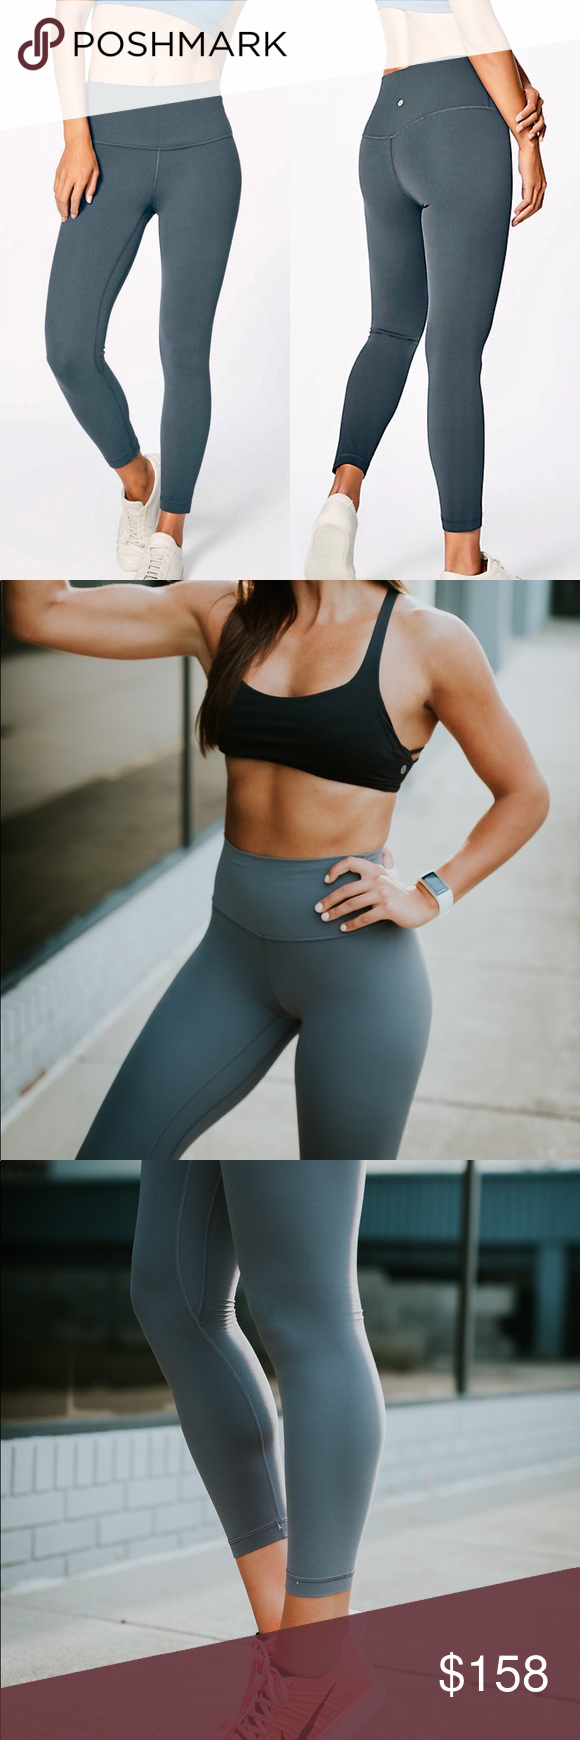 82f8f2b4b8bc48 Lululemon Align Pant Melanite Such a gorgeous color - perfect mix of grey  and green -